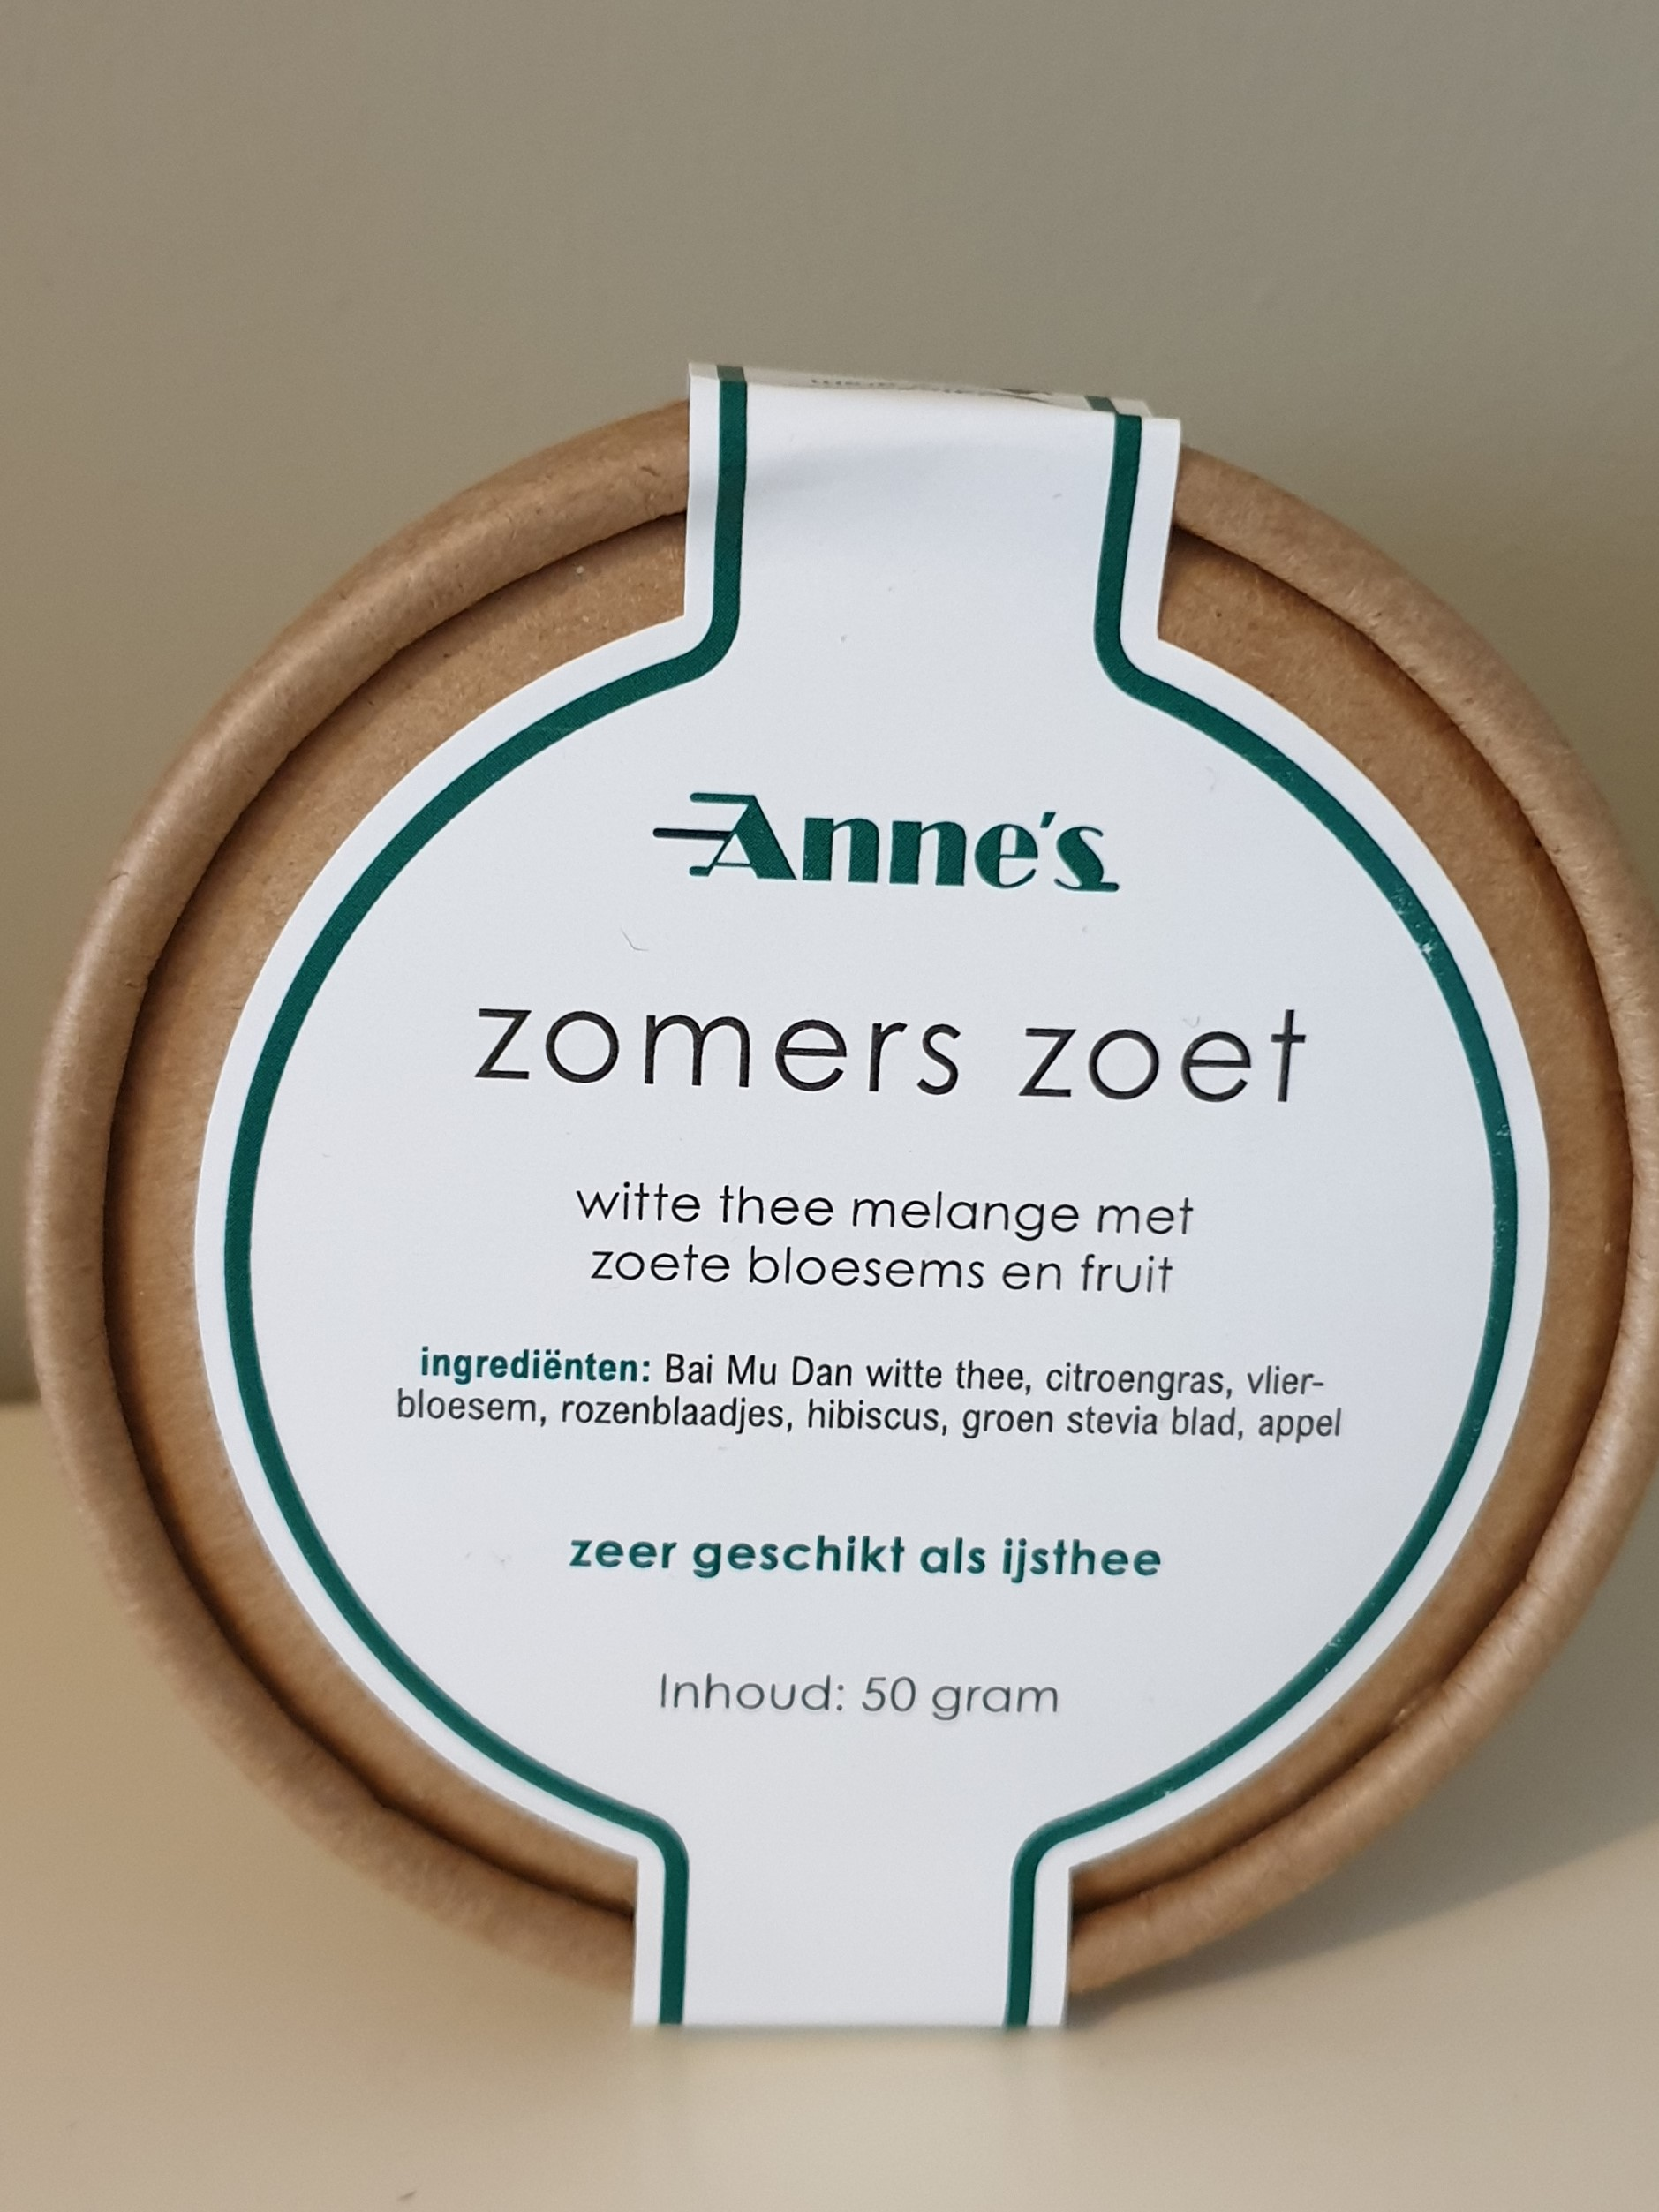 Zomers Zoet